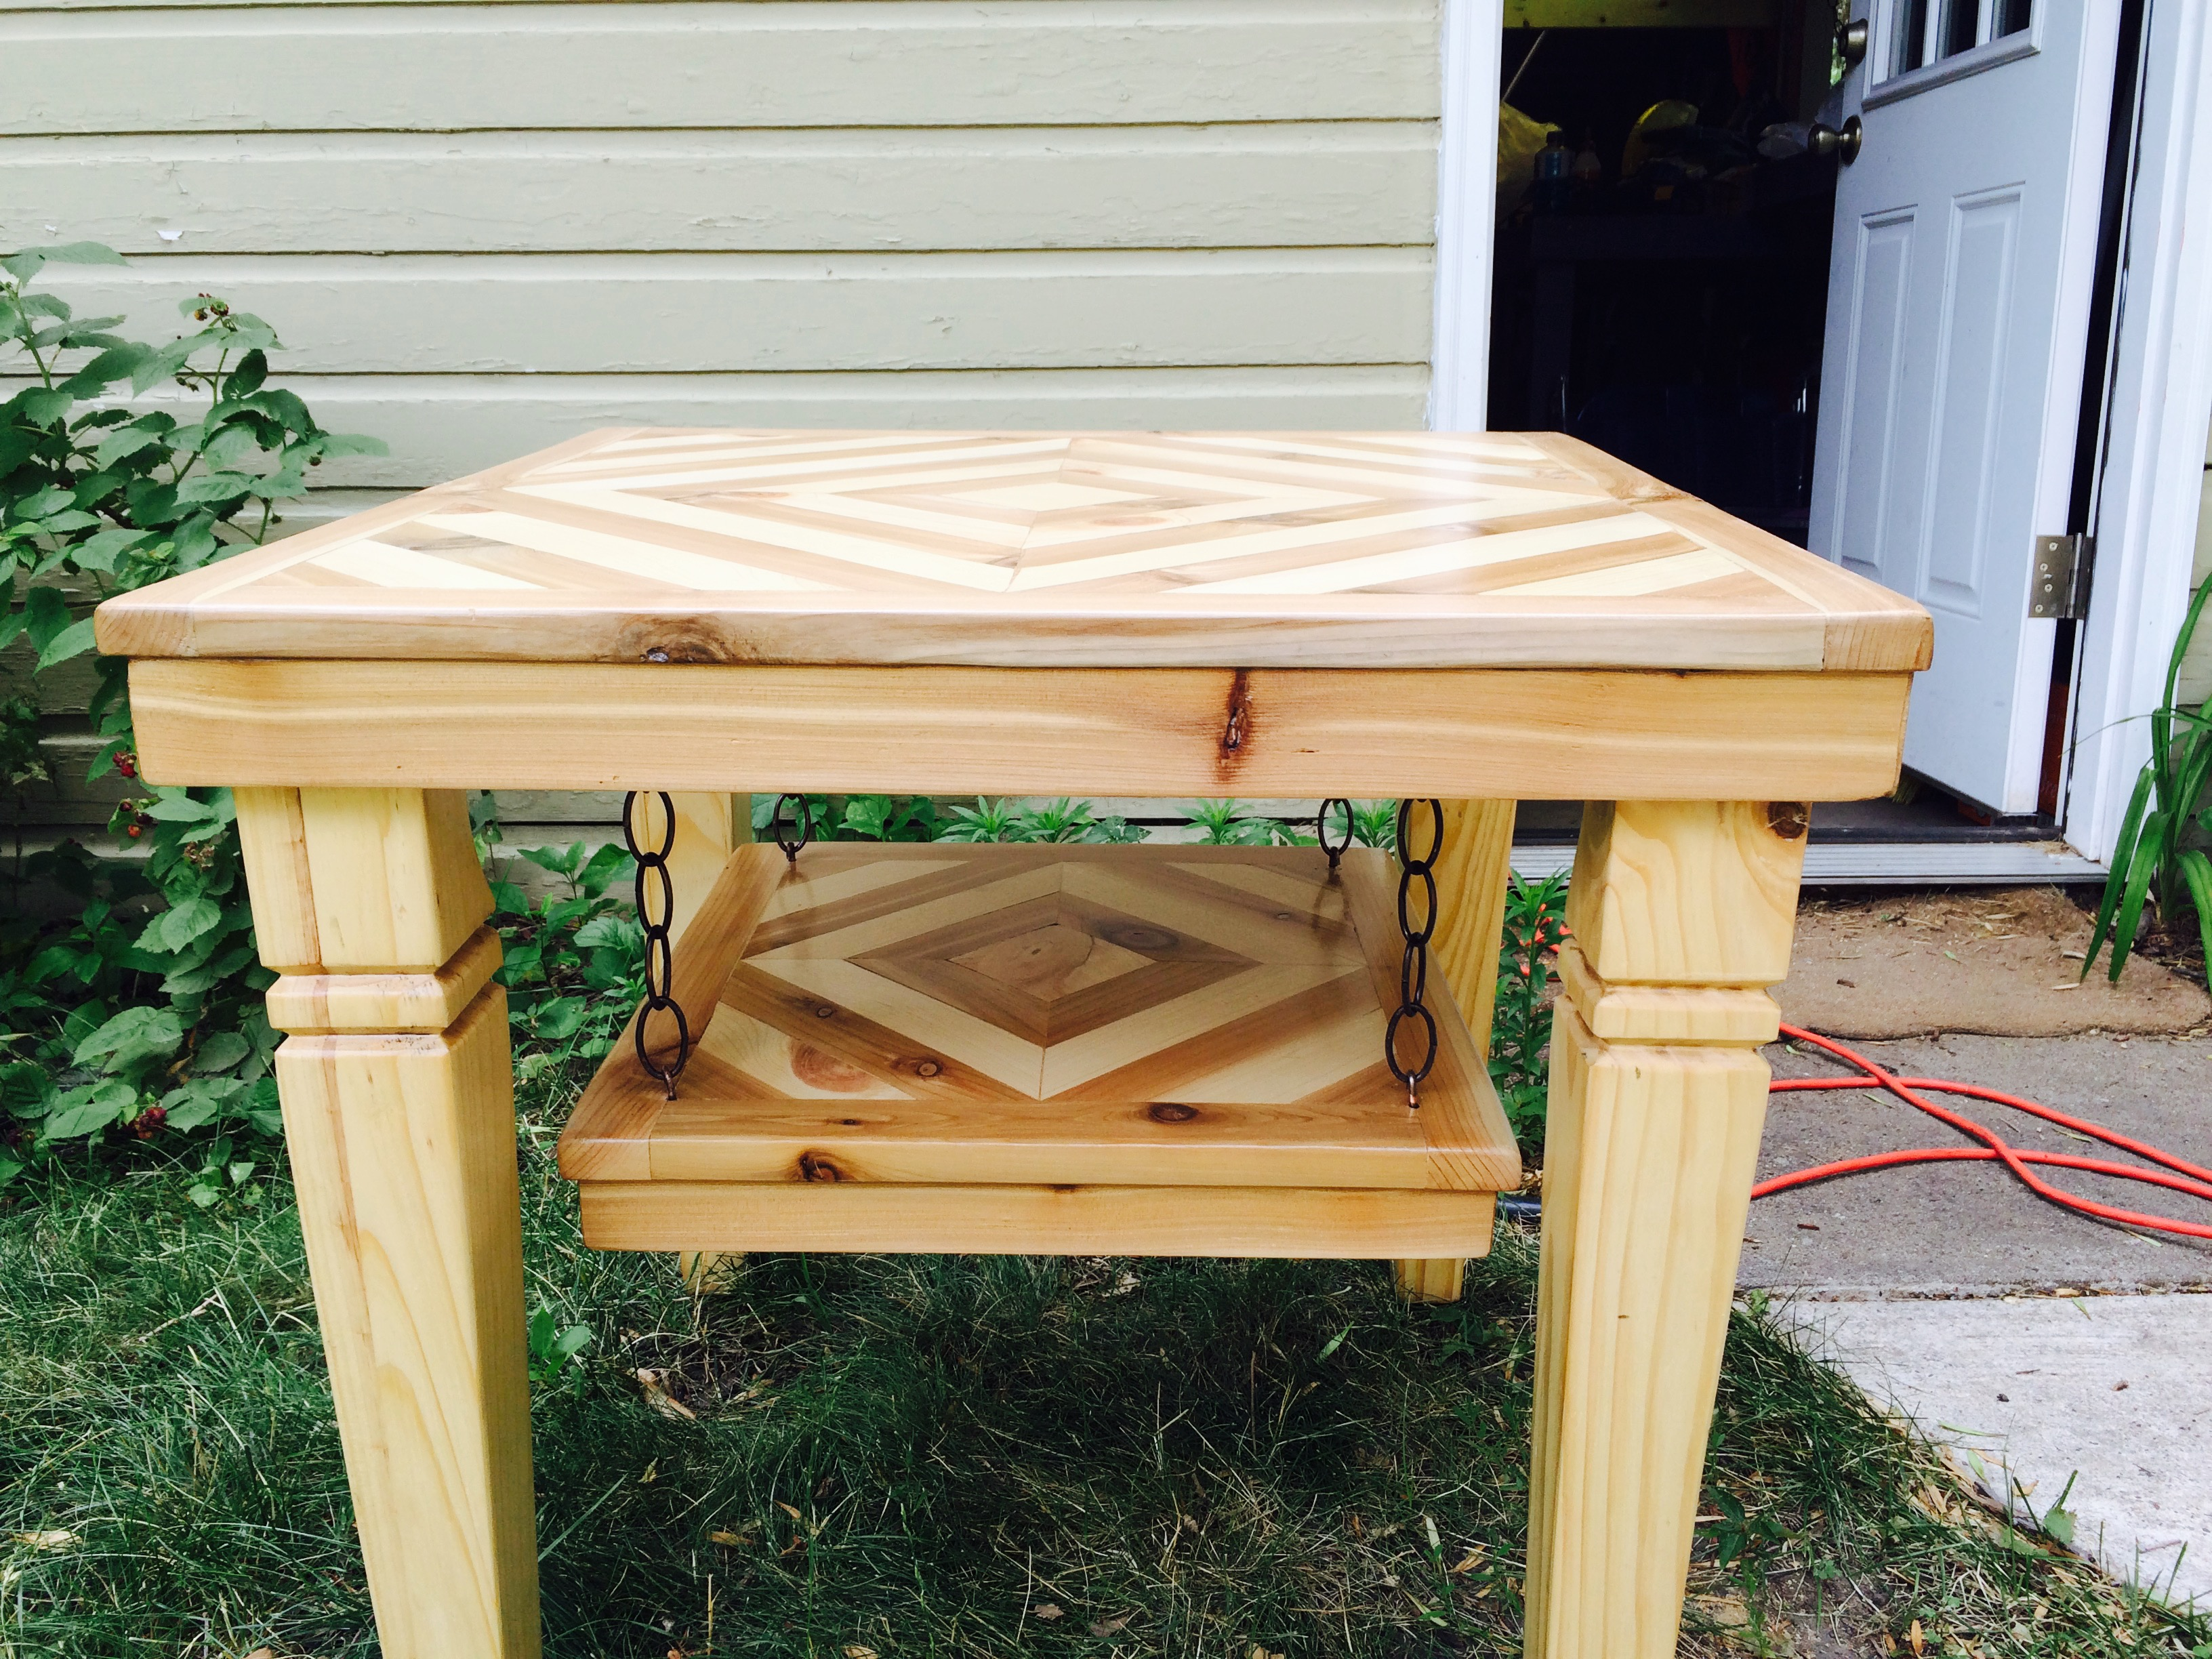 hand made cedar and pine end table with hanging shelf shelf can be removed for transportation or personal preference 24x24 23 tall - Hanging End Tables